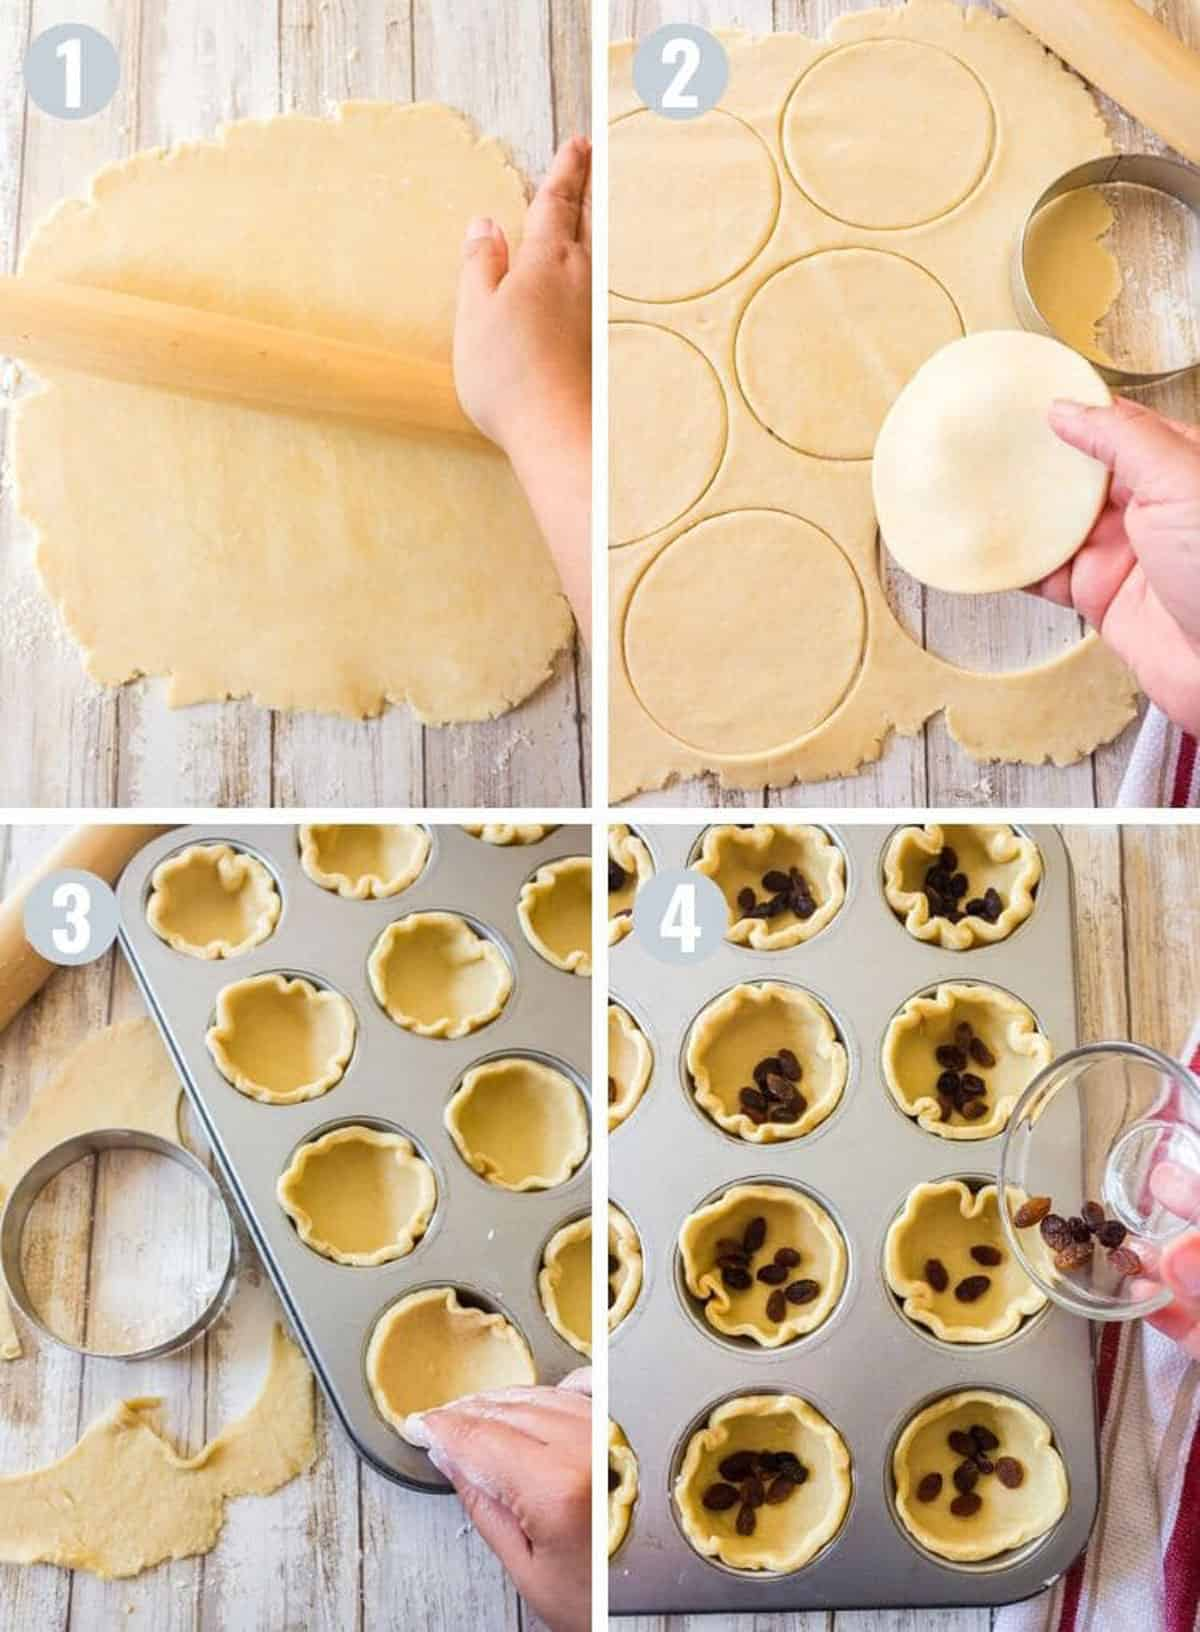 Rolling out dough and making butter tarts.